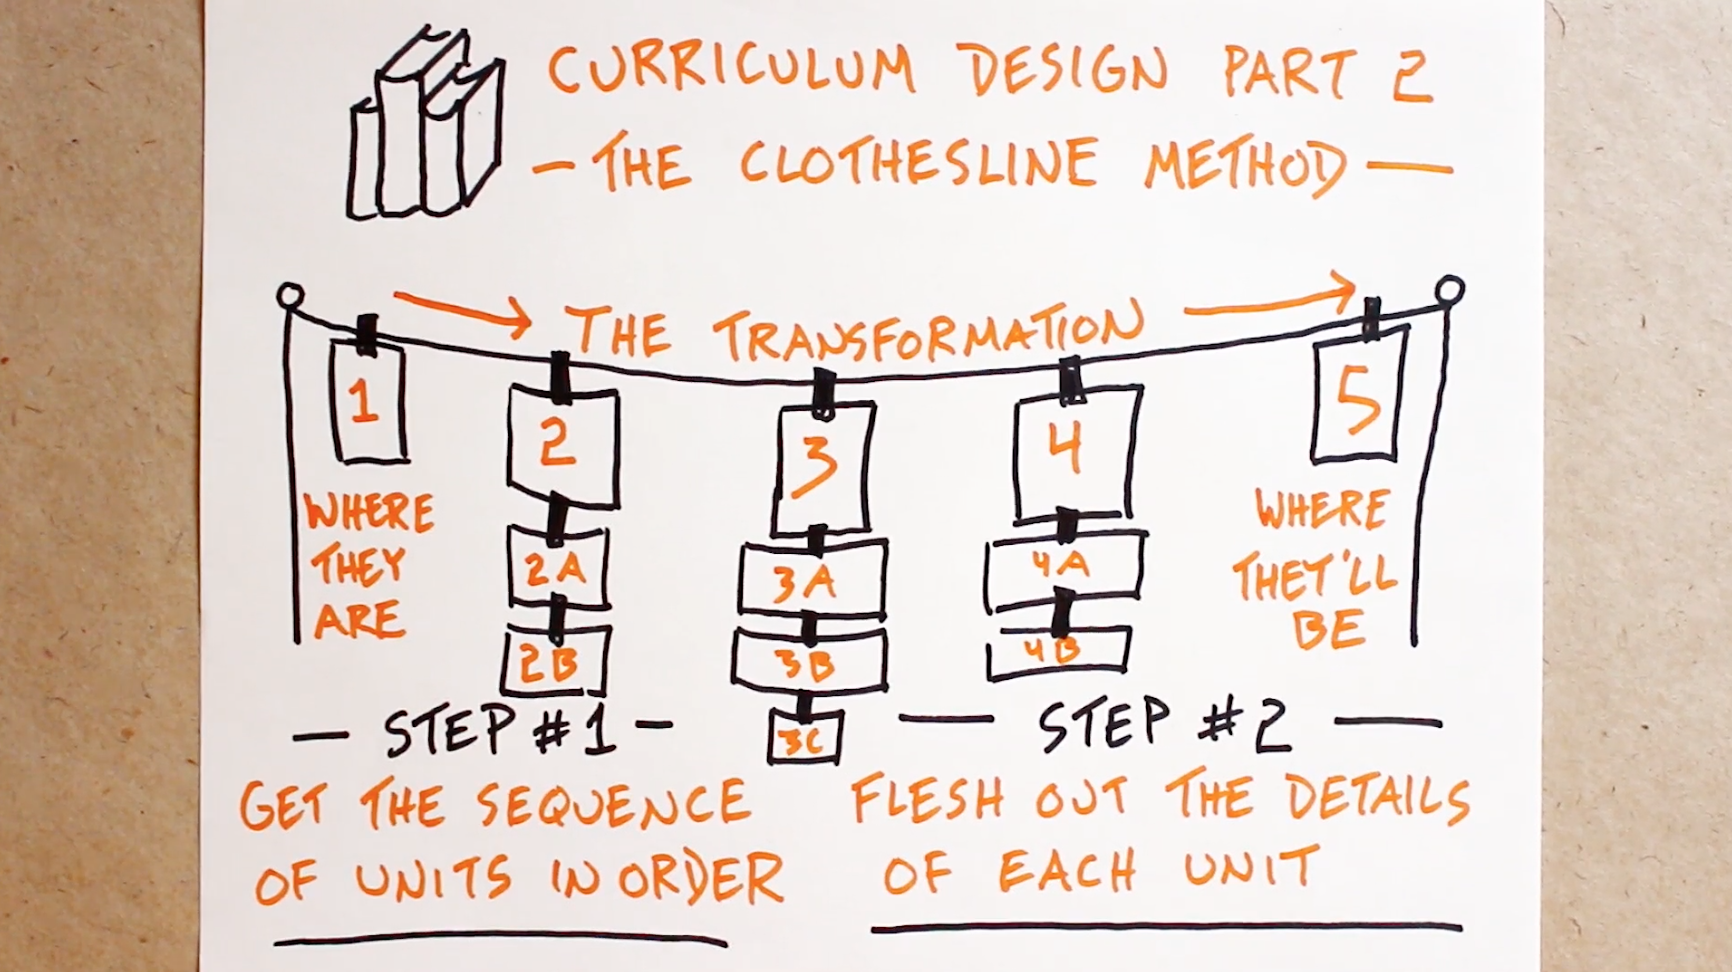 Classroom Curriculum Design ~ Curriculum design part the clothesline method verbal